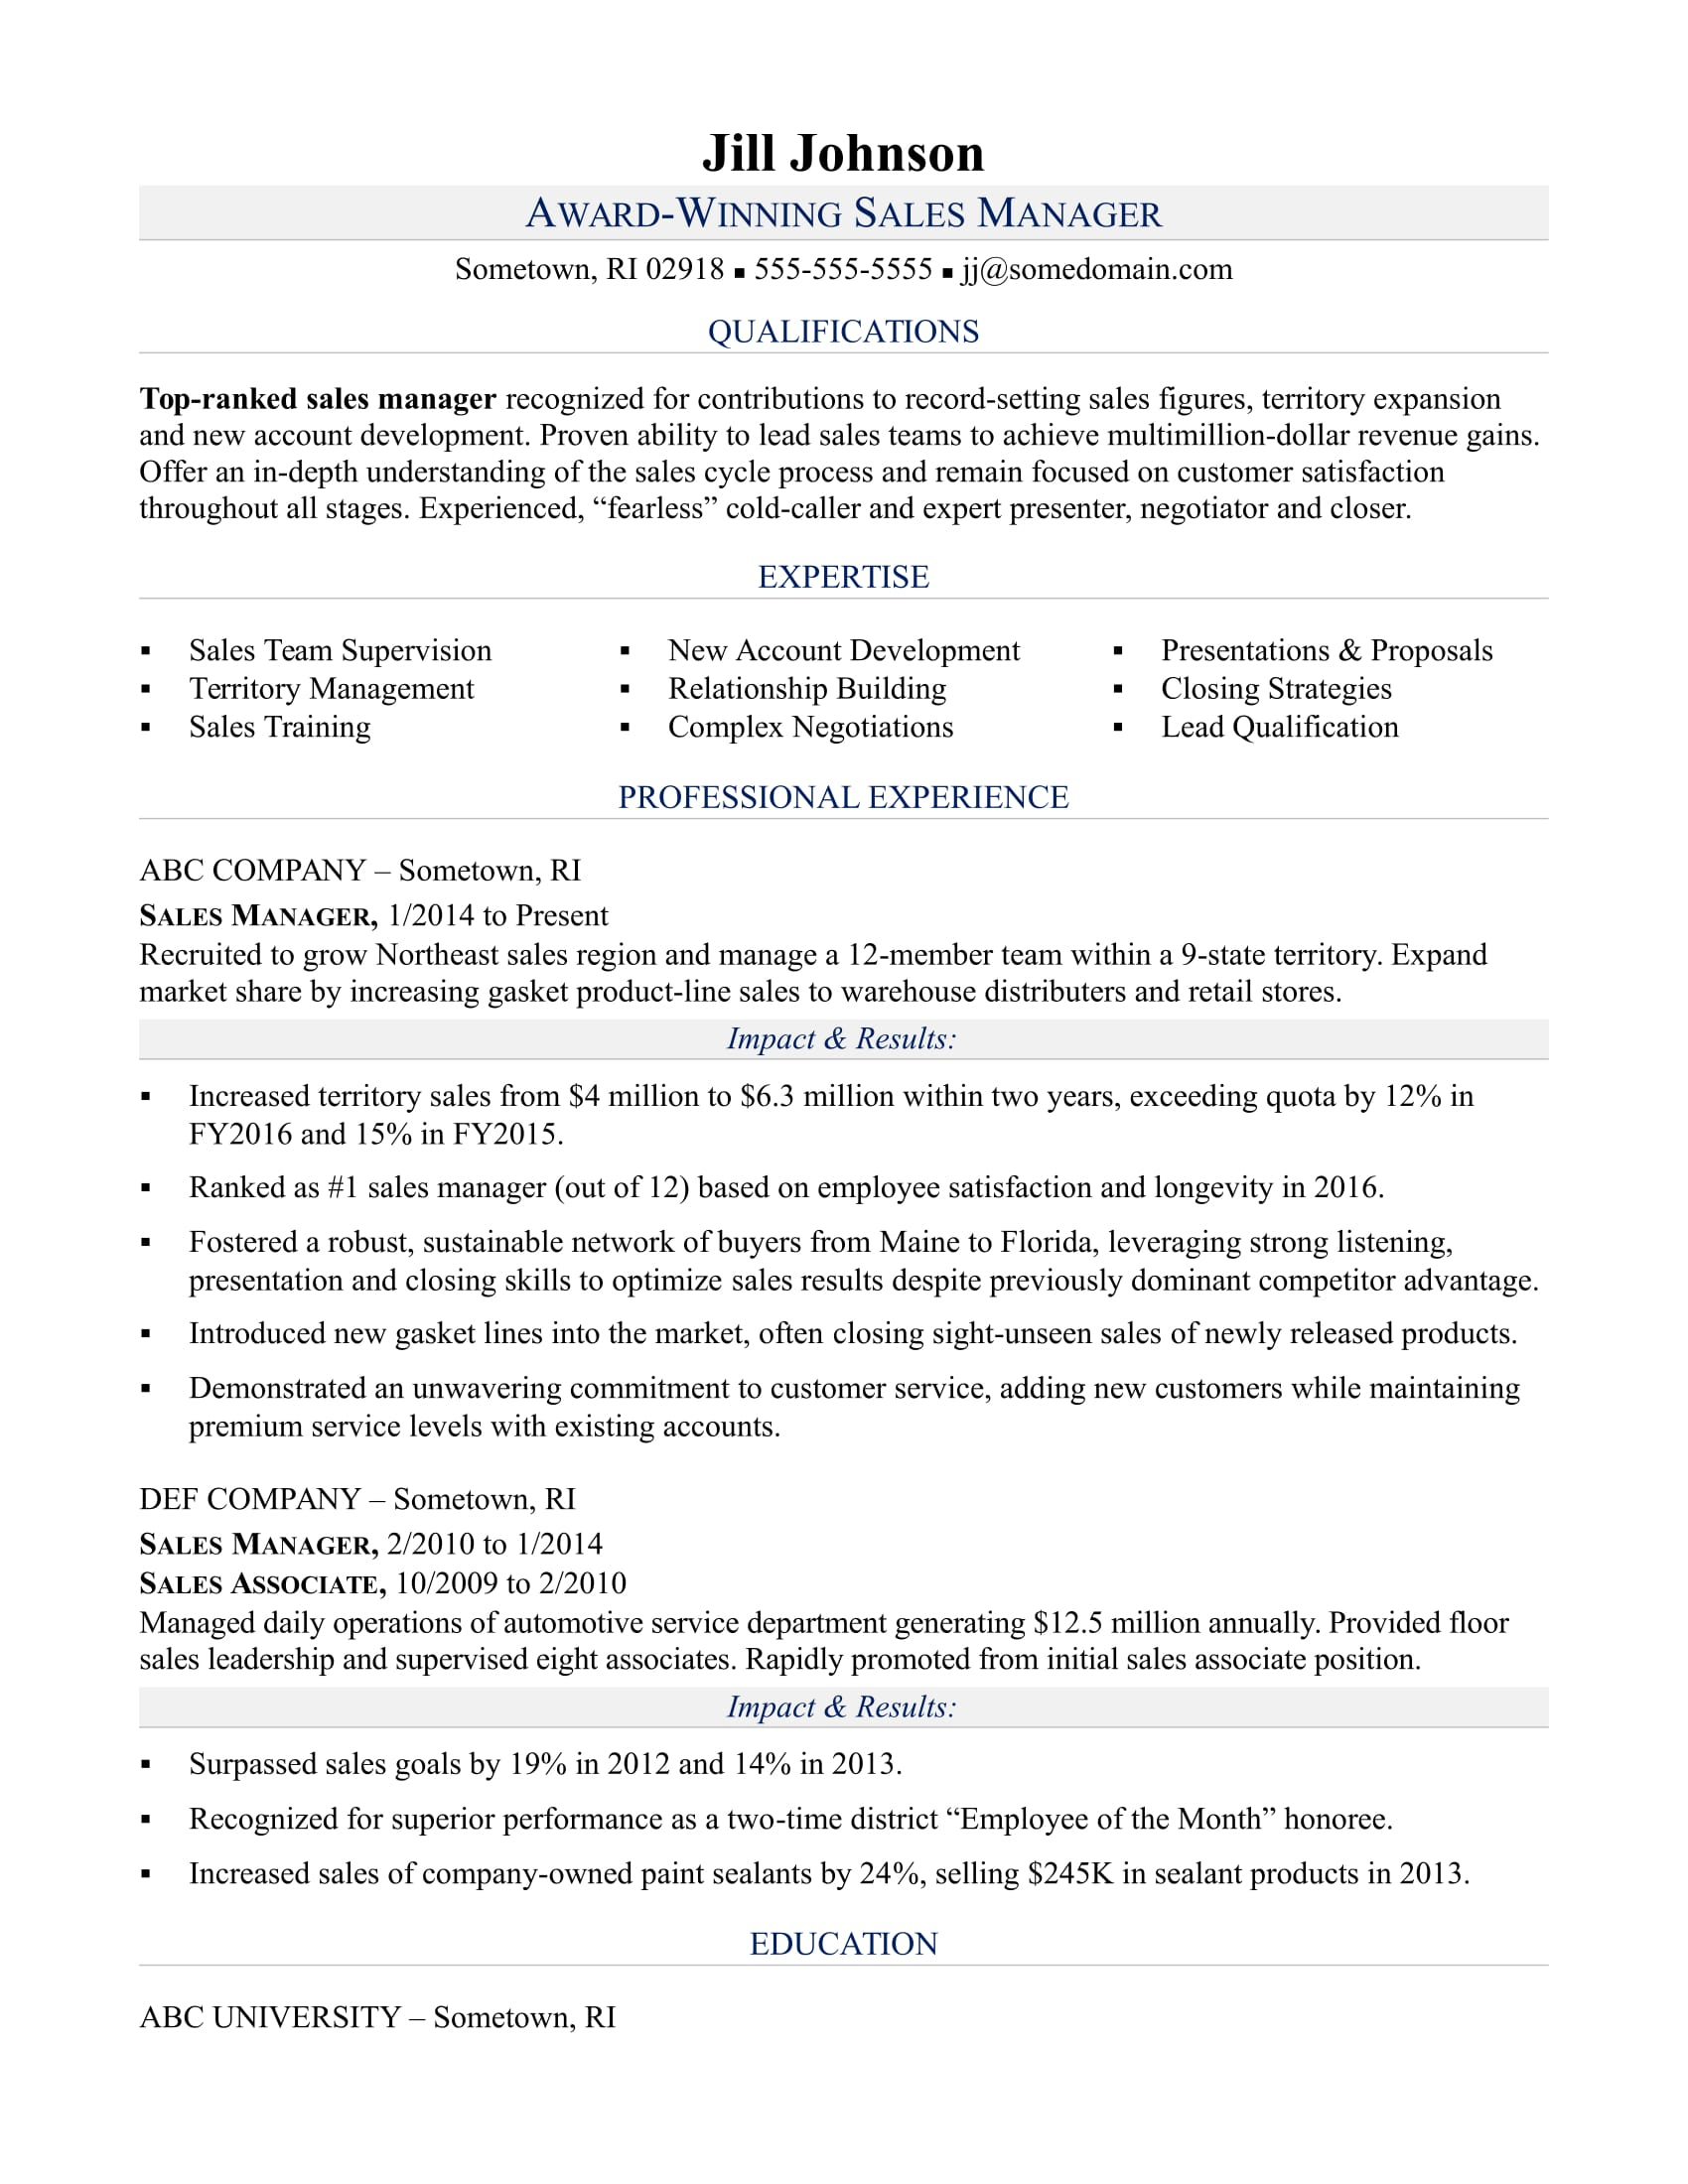 Sample Resume For A Sales Manager Pertaining To Territory Manager Resume